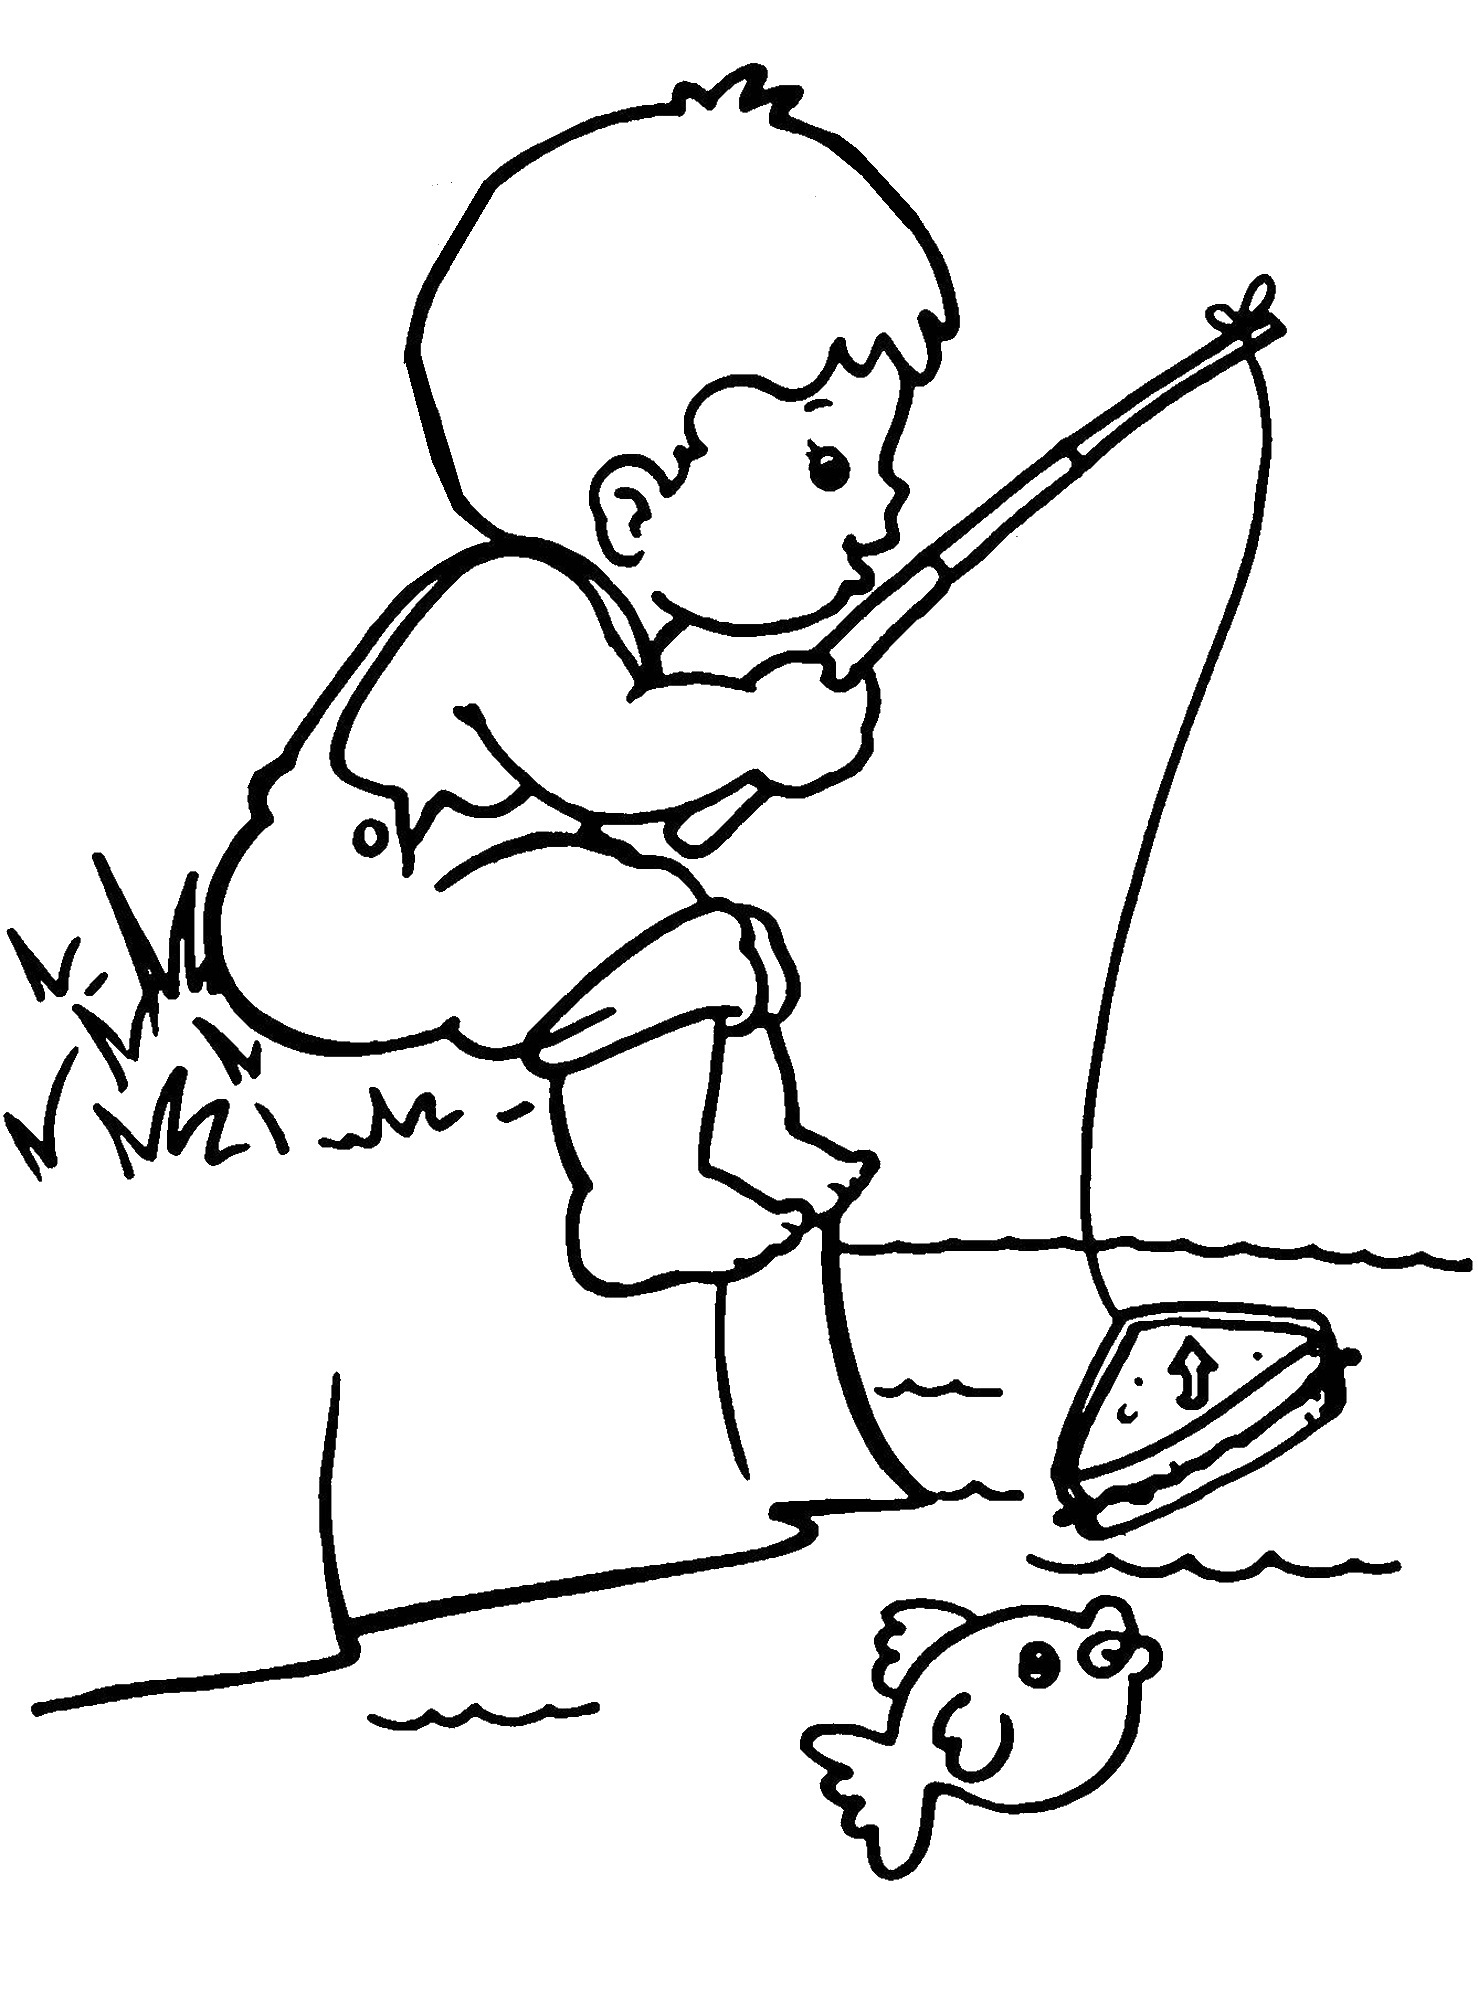 free printable boy coloring pages for kids - Free Printable Football Coloring Pages